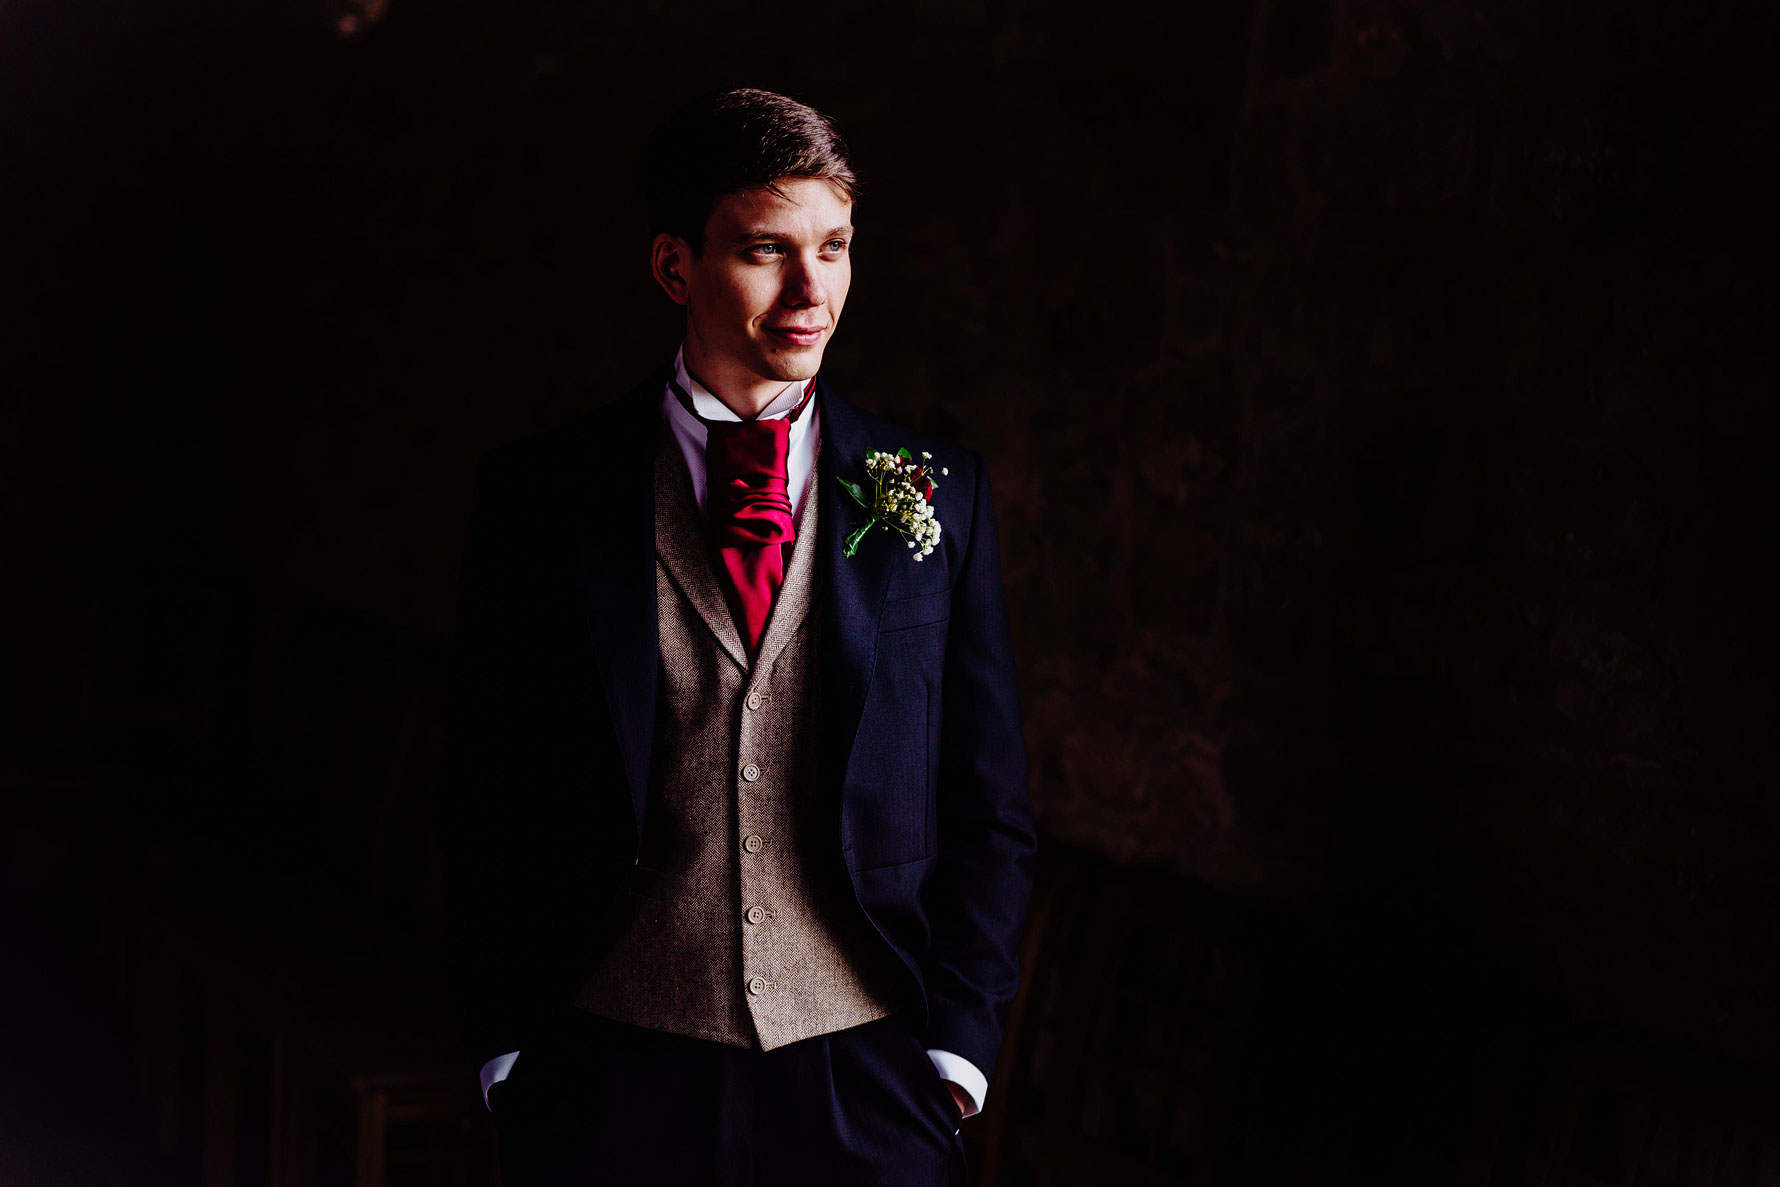 a artistic portrait of a groom